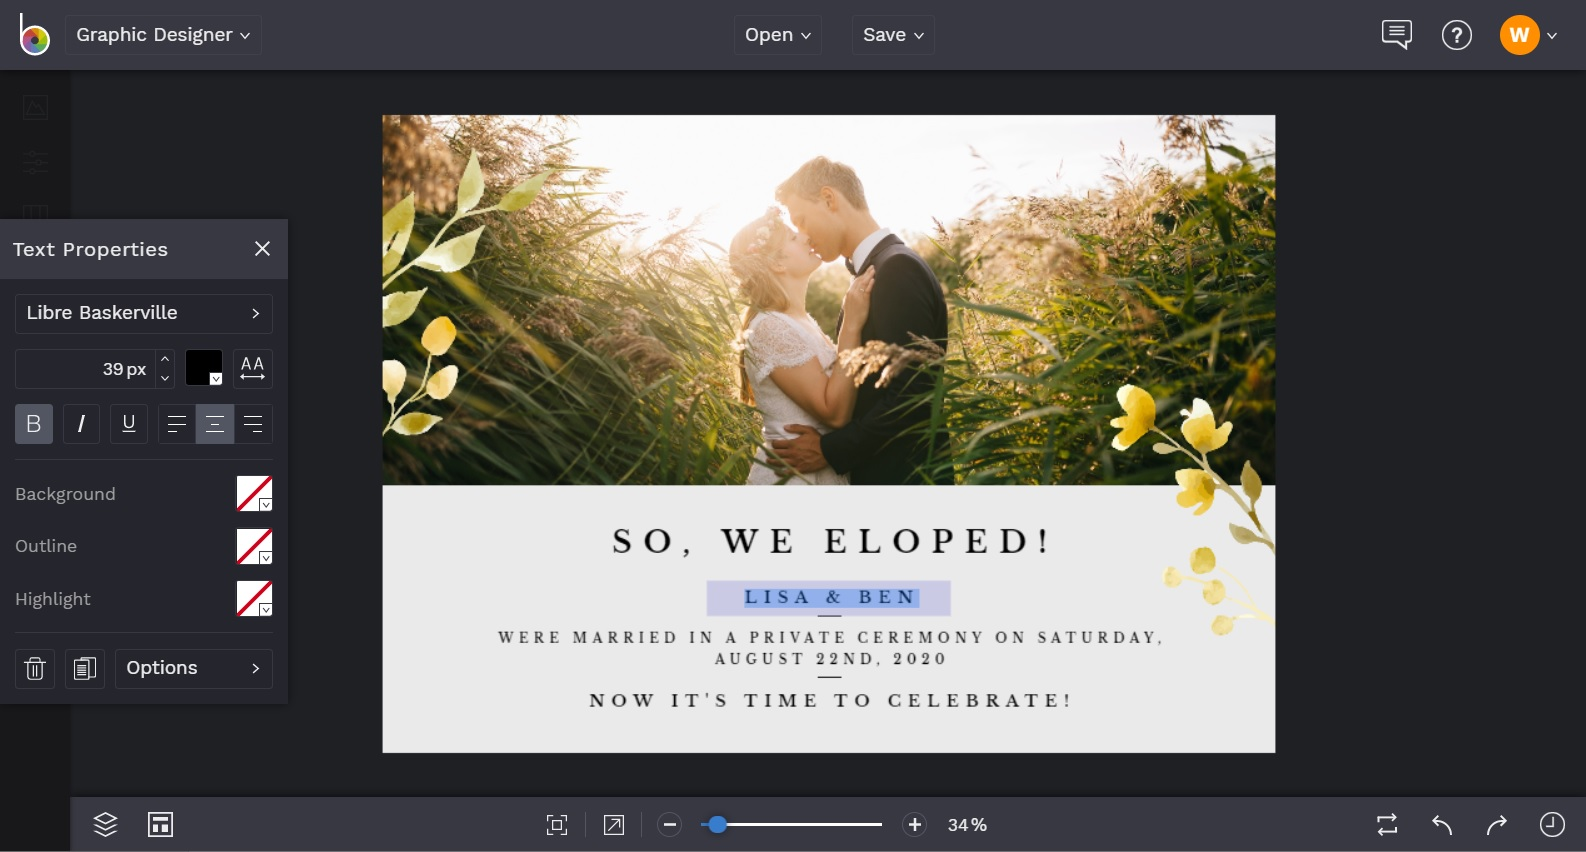 Change text in the elopement announcement